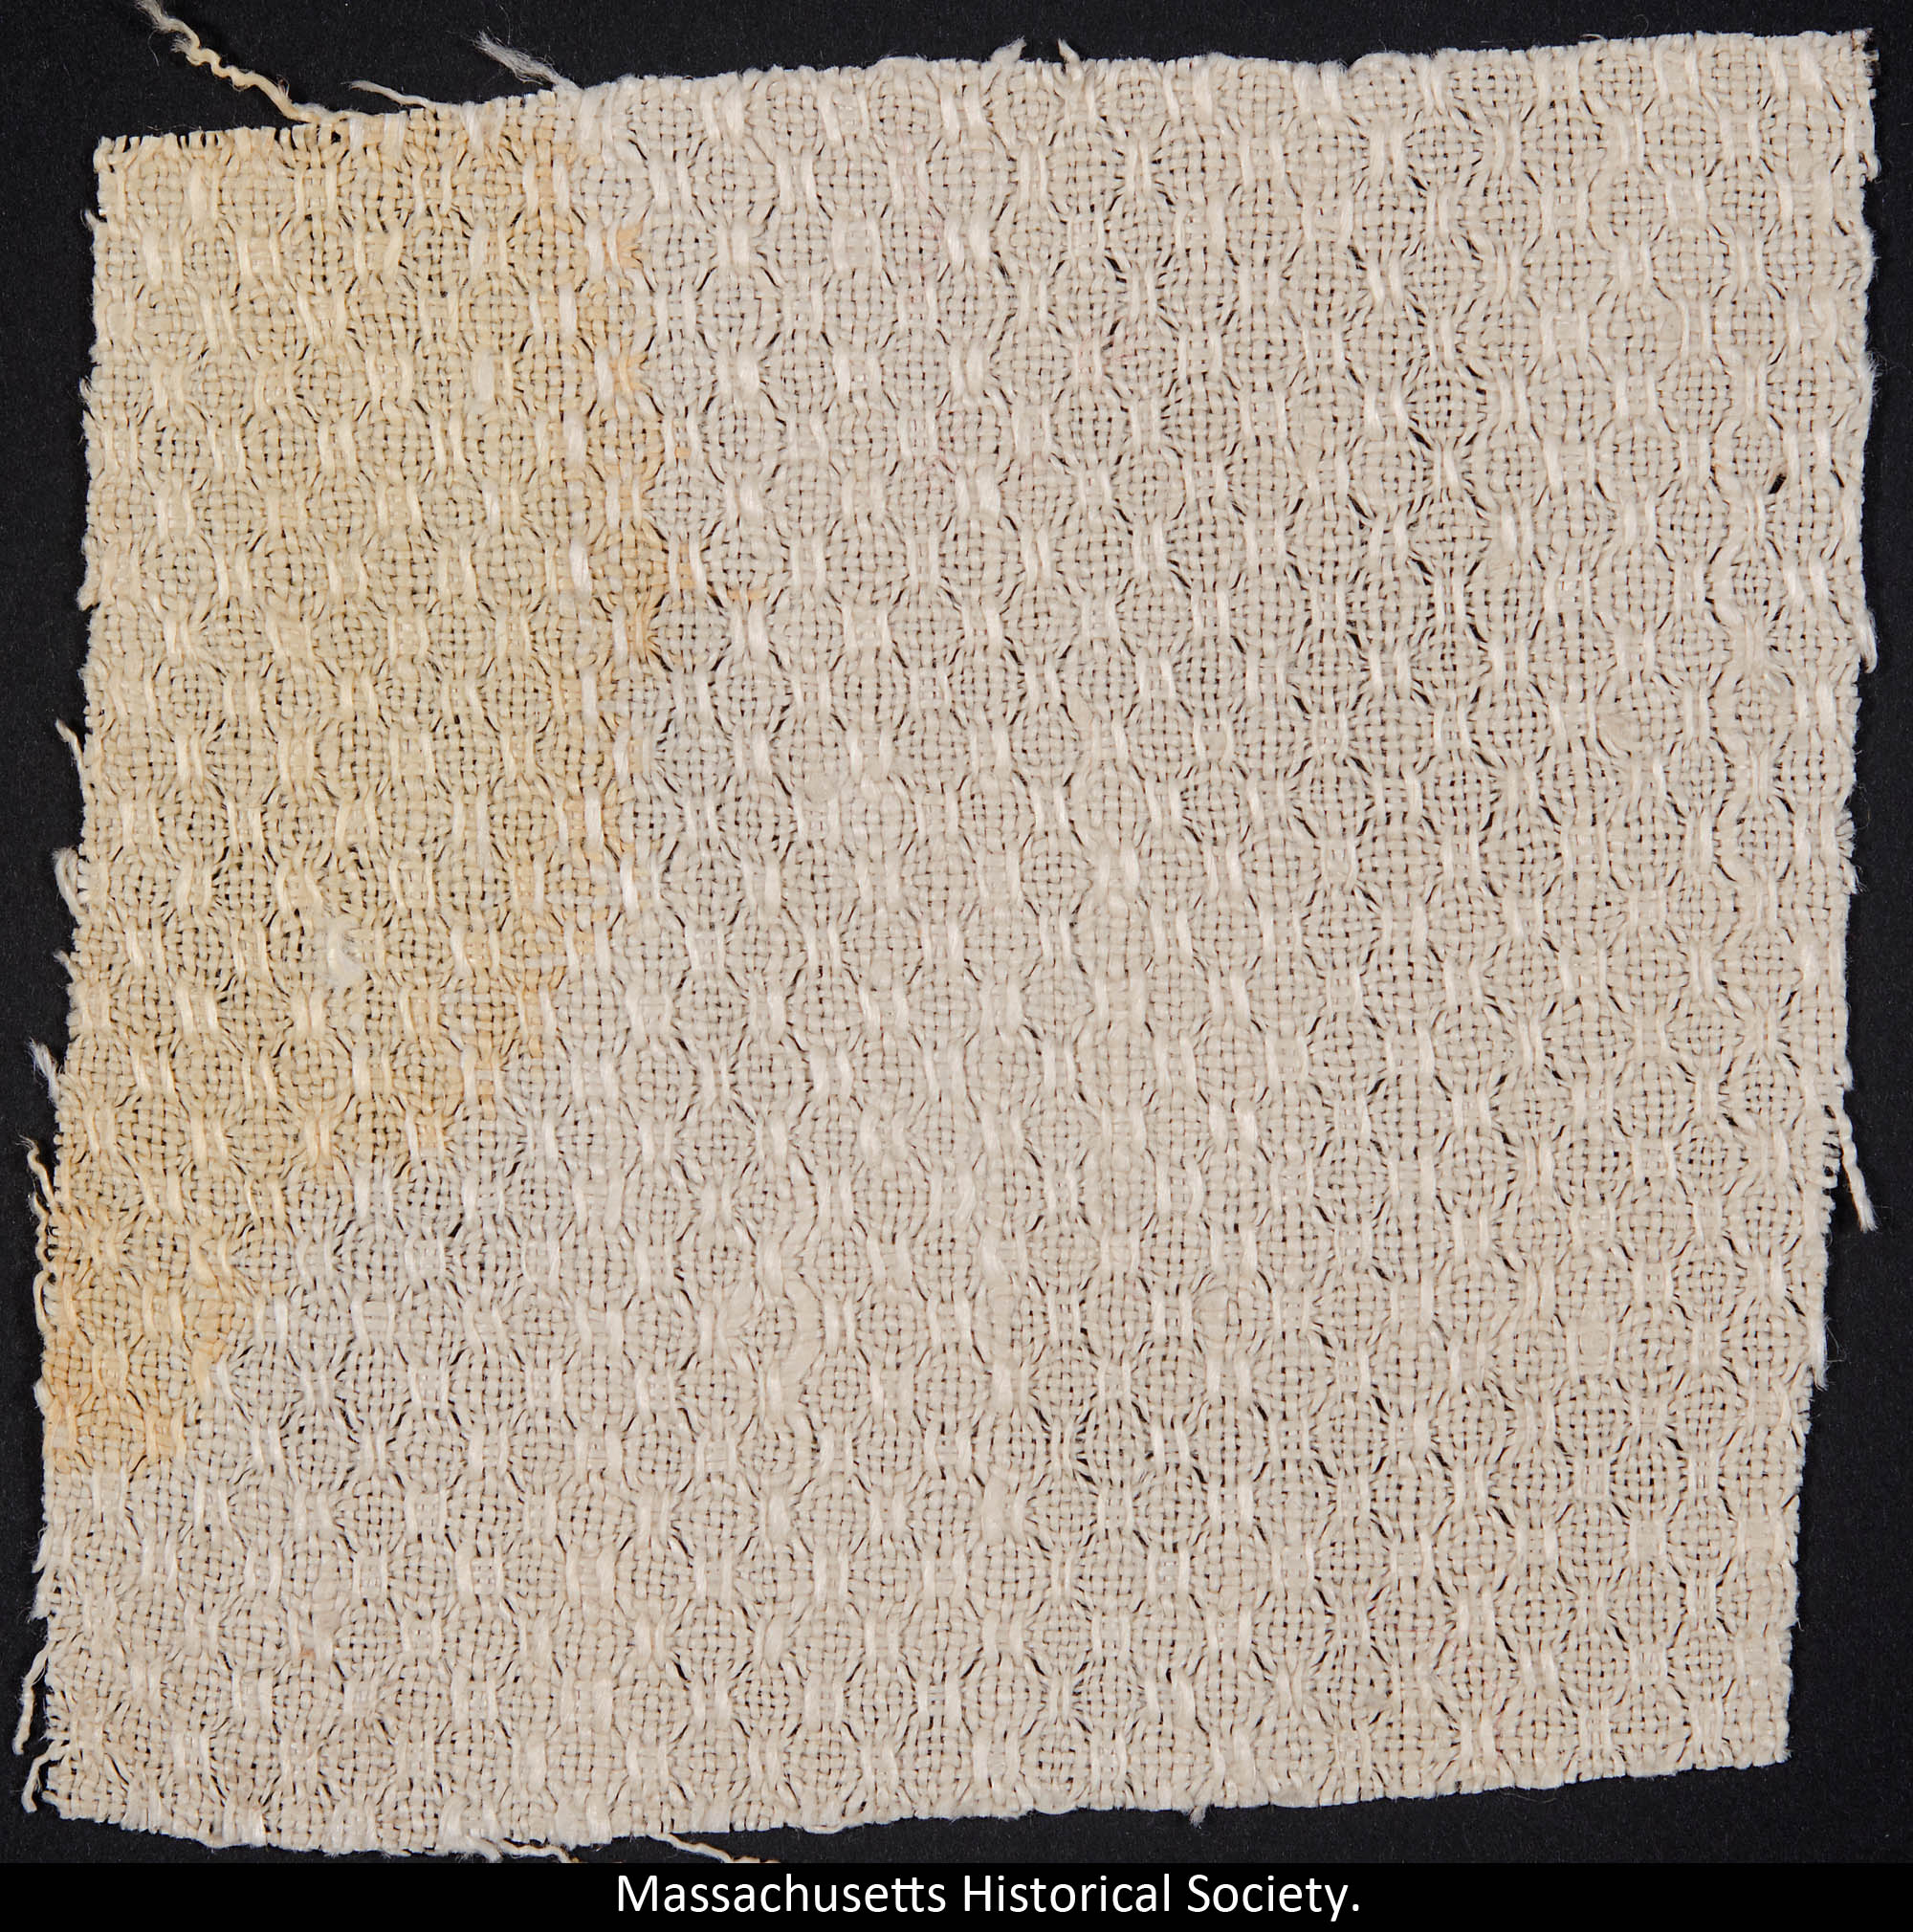 Fragment of towel stained with blood of Abraham Lincoln